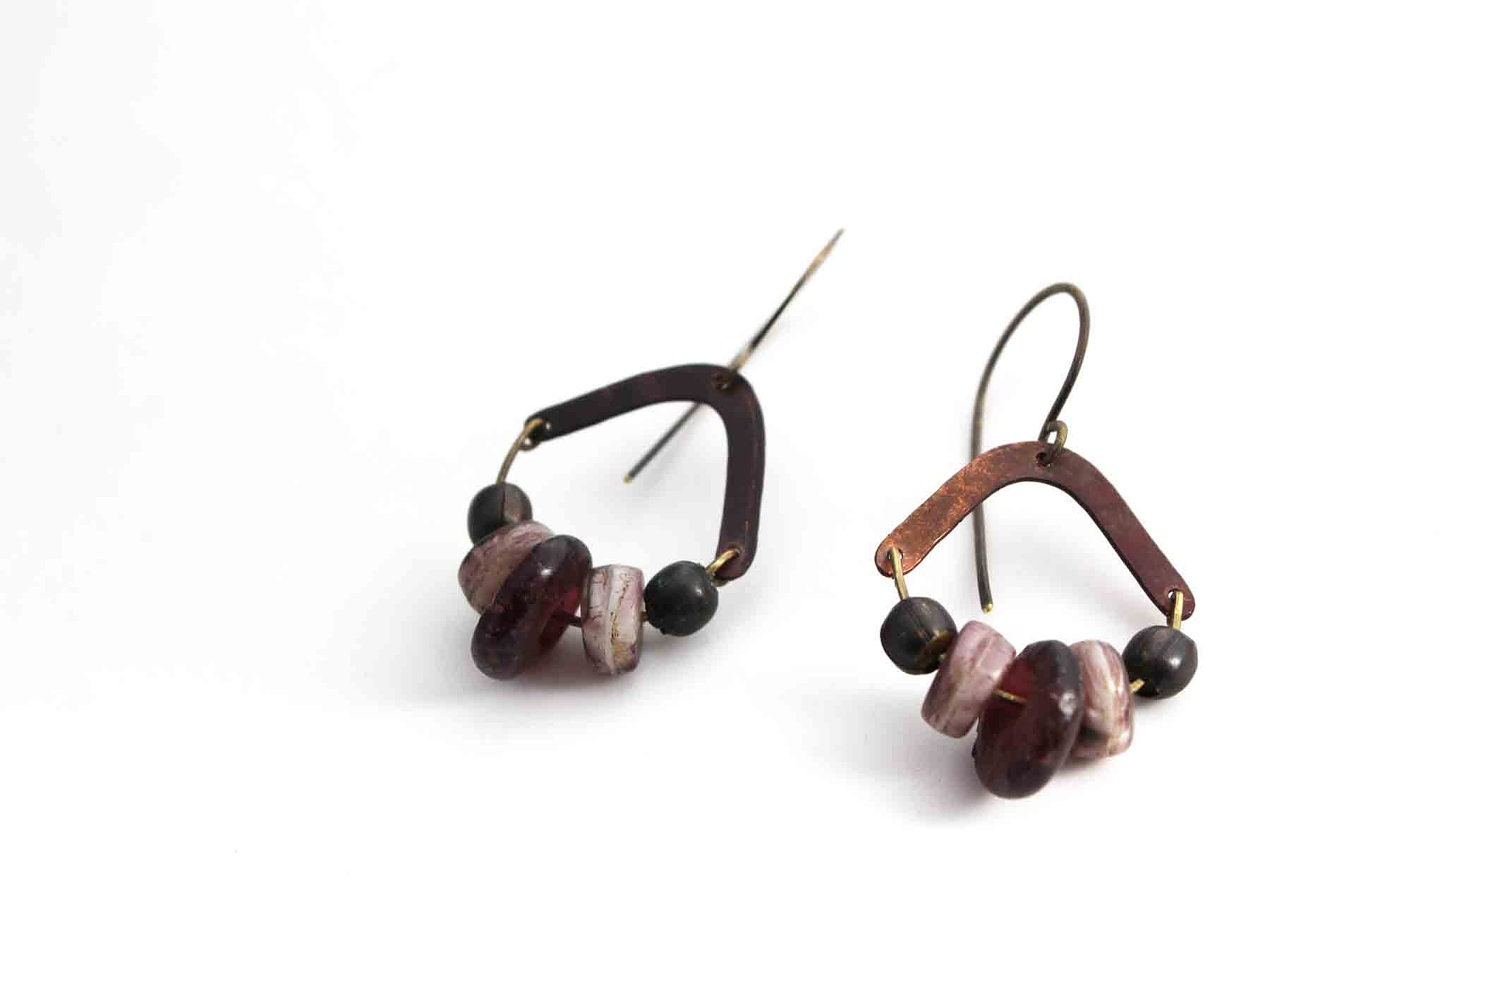 Berries and copper earrings - blackberry mauve glass beads - tribal inspired - LucieTales